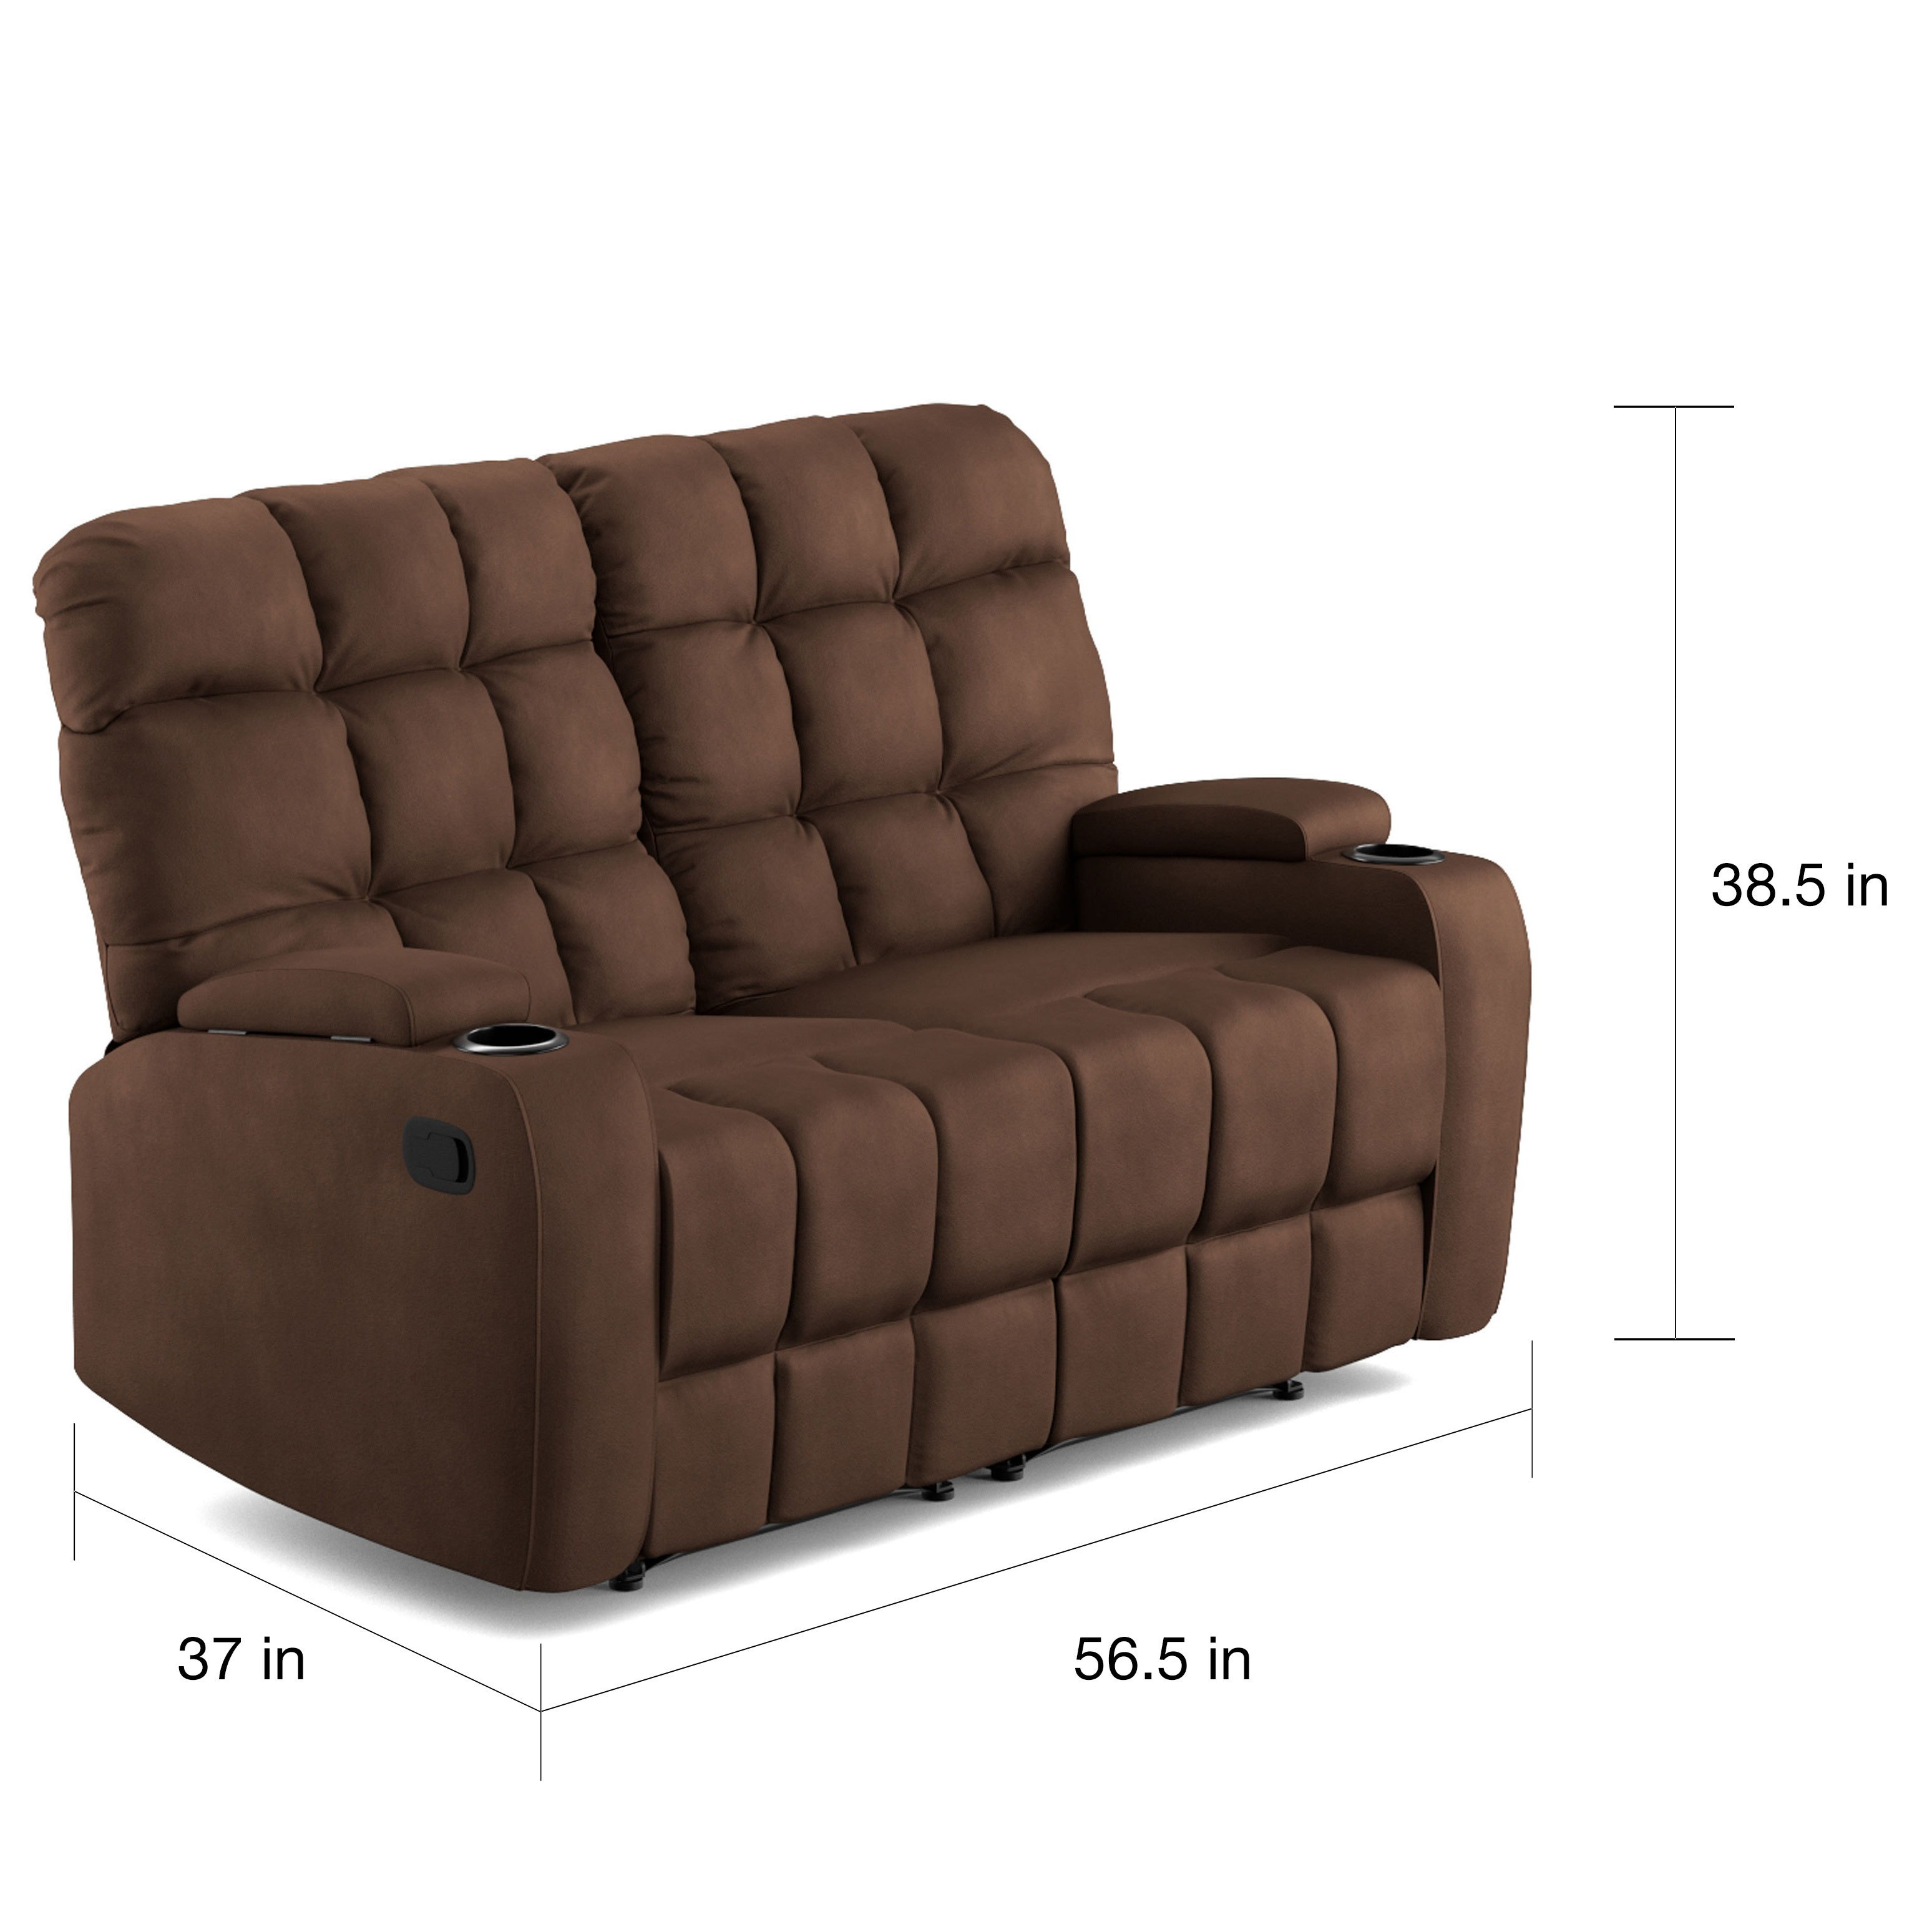 and sofas covers sofa loveseat kids top microfiber cover for couch protector slip furniture tan